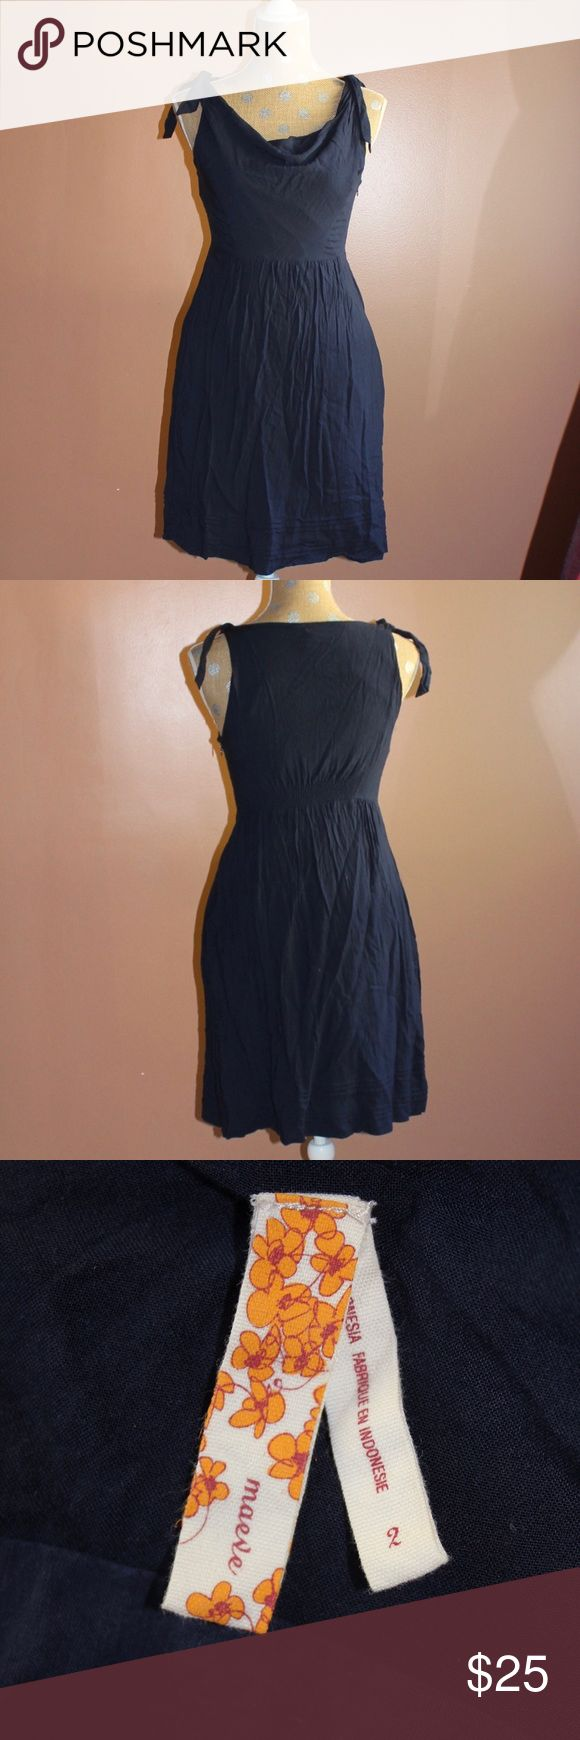 Anthro tied shoulder navy mini dress An adorable little navy frock from Anthro. Ties at the shoulder and draped at the neckline. In excellent shape! Anthropologie Dresses Mini